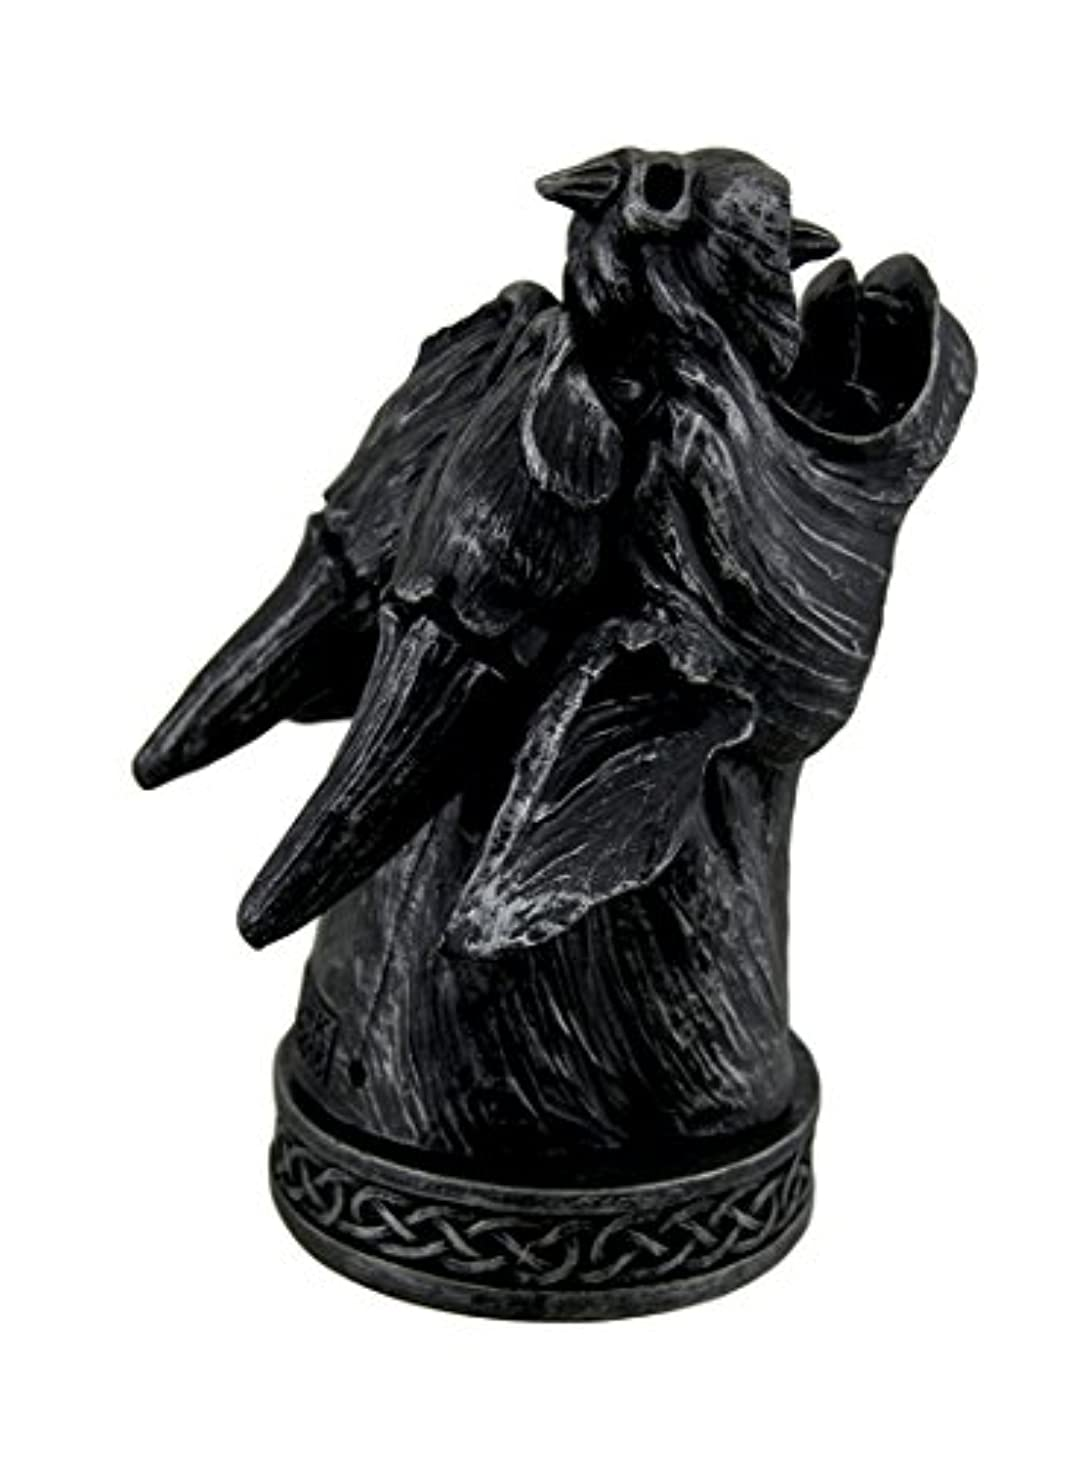 ジャム攻撃呼び出すTemple Mist Smoking Gargoyle Incense Cone Burner Box